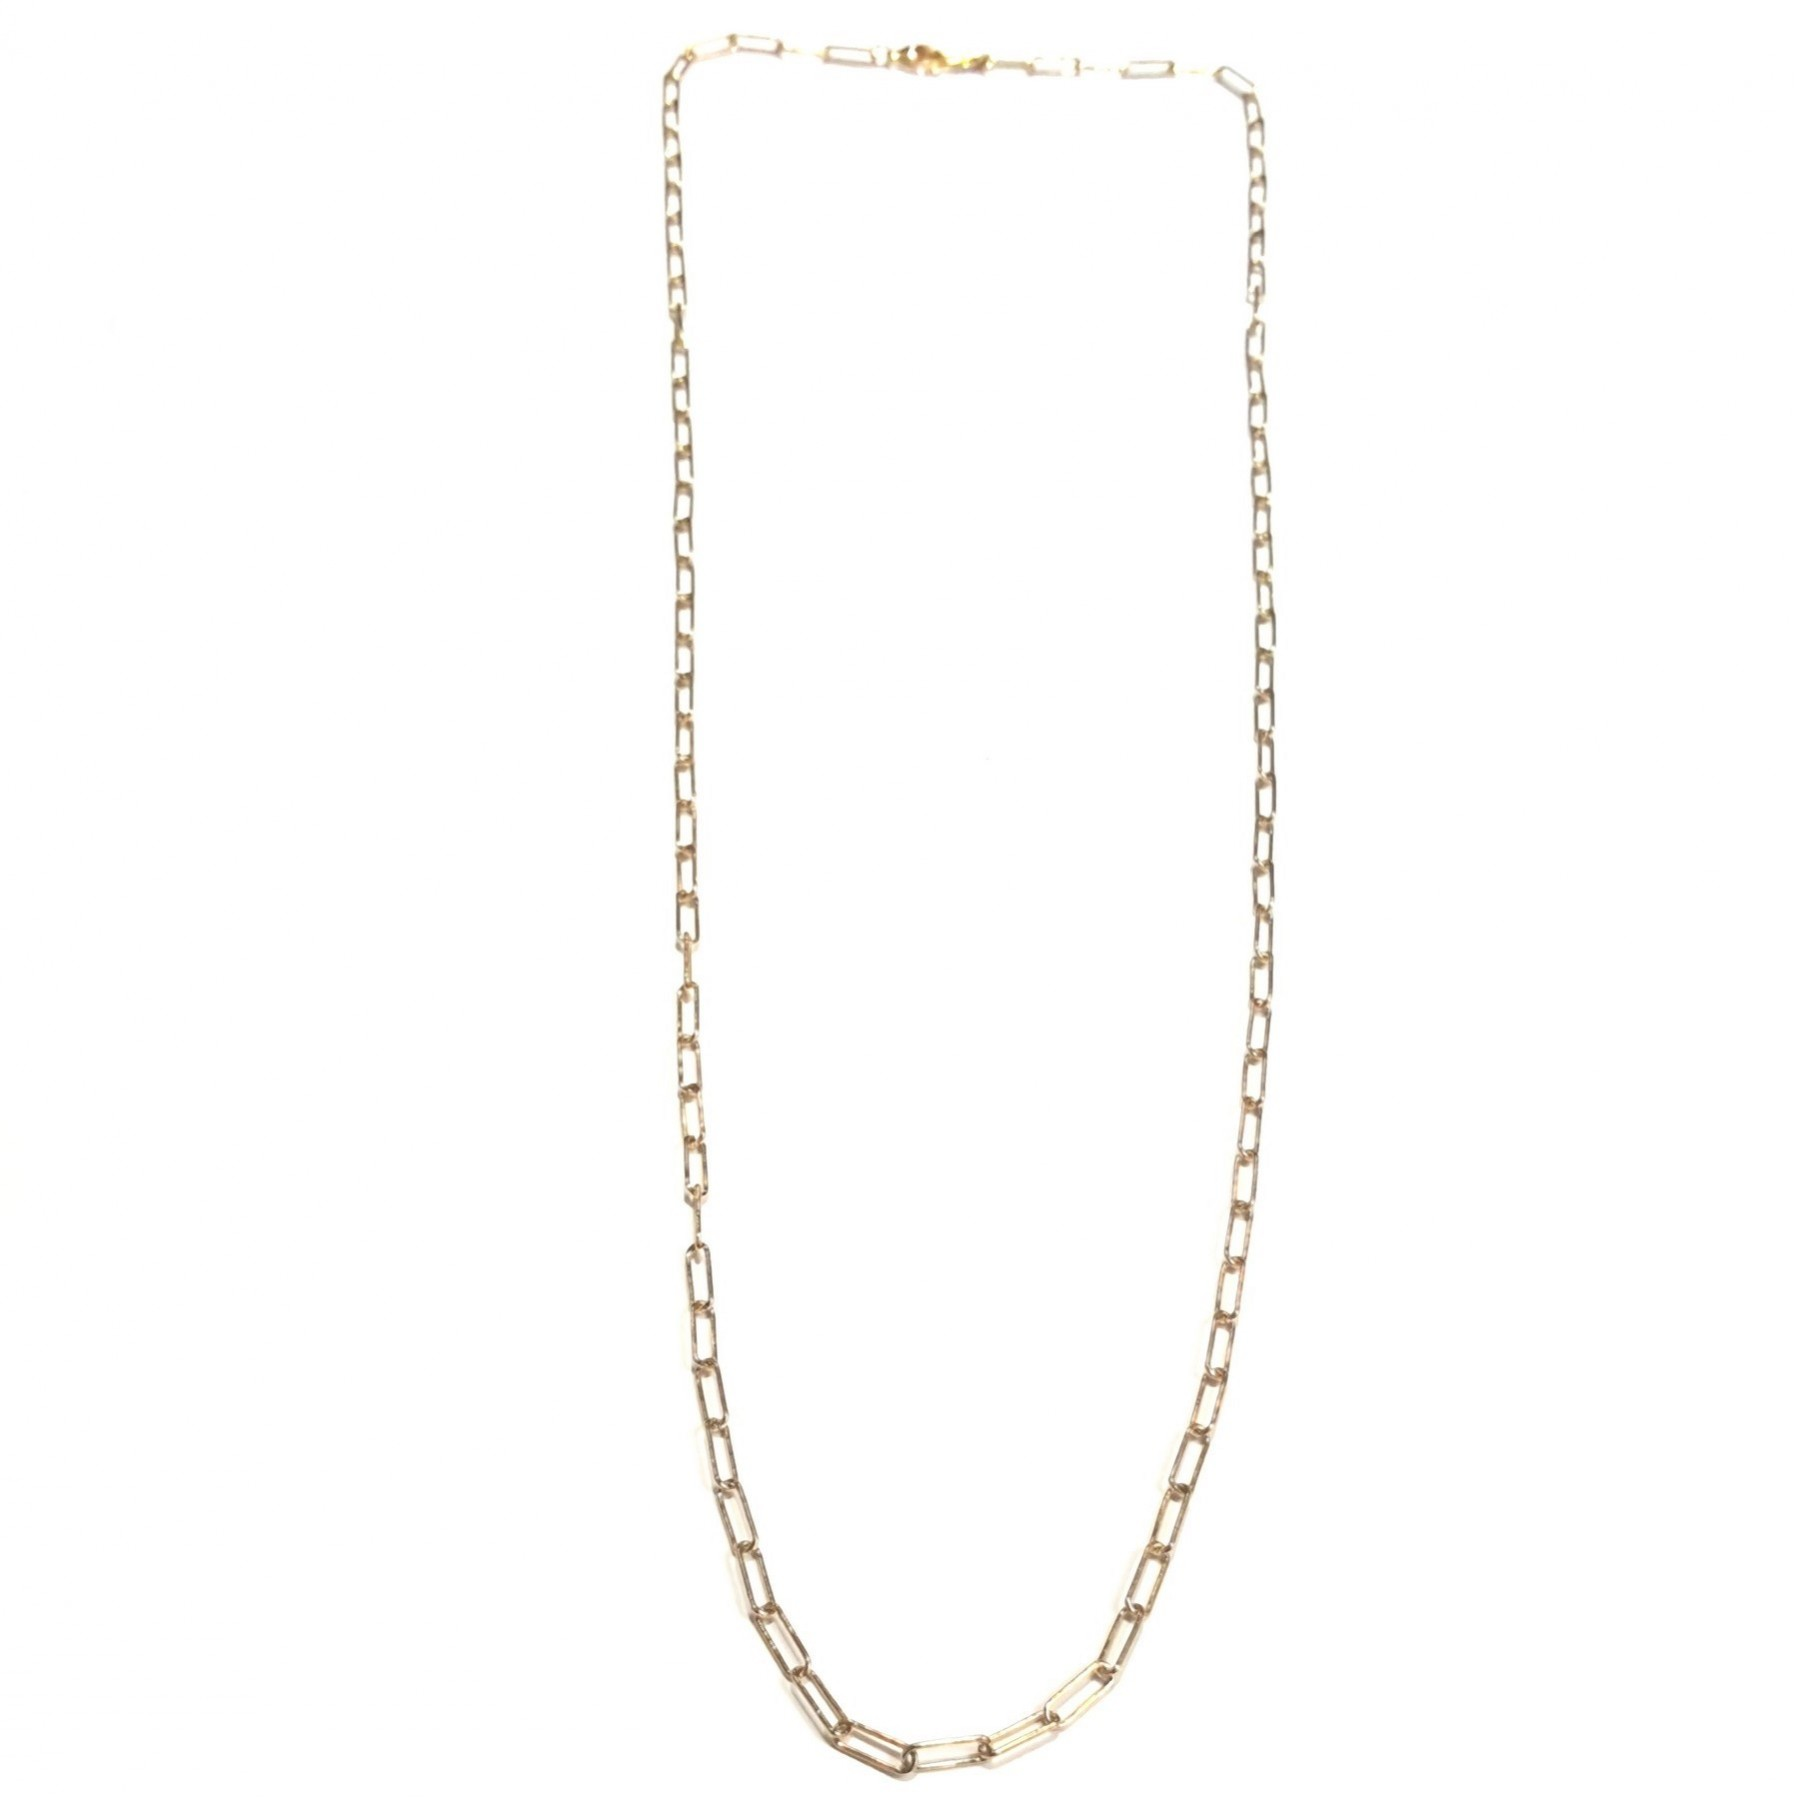 Collier long chaîne maille rectangle